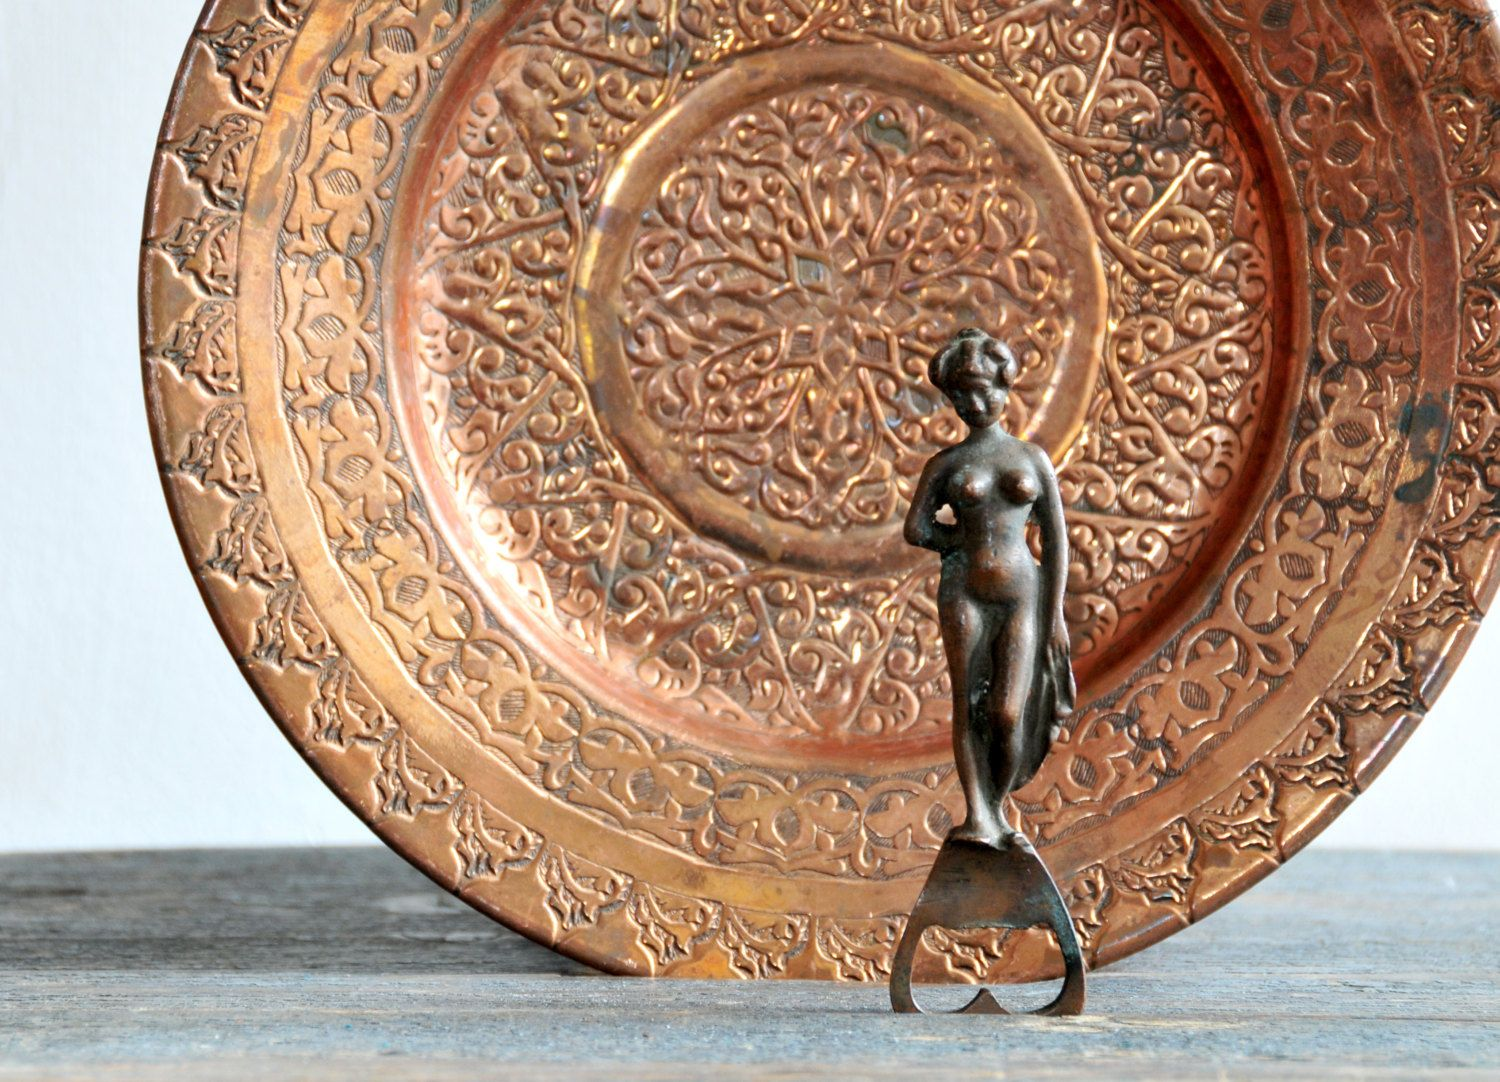 Copper Wall Plate Copper Wall Hanging Oriental Plate Oriental Home Decor Copper Home Decor By Coloursandsoul On Ets Copper Wall Plates On Wall Wall Hanging